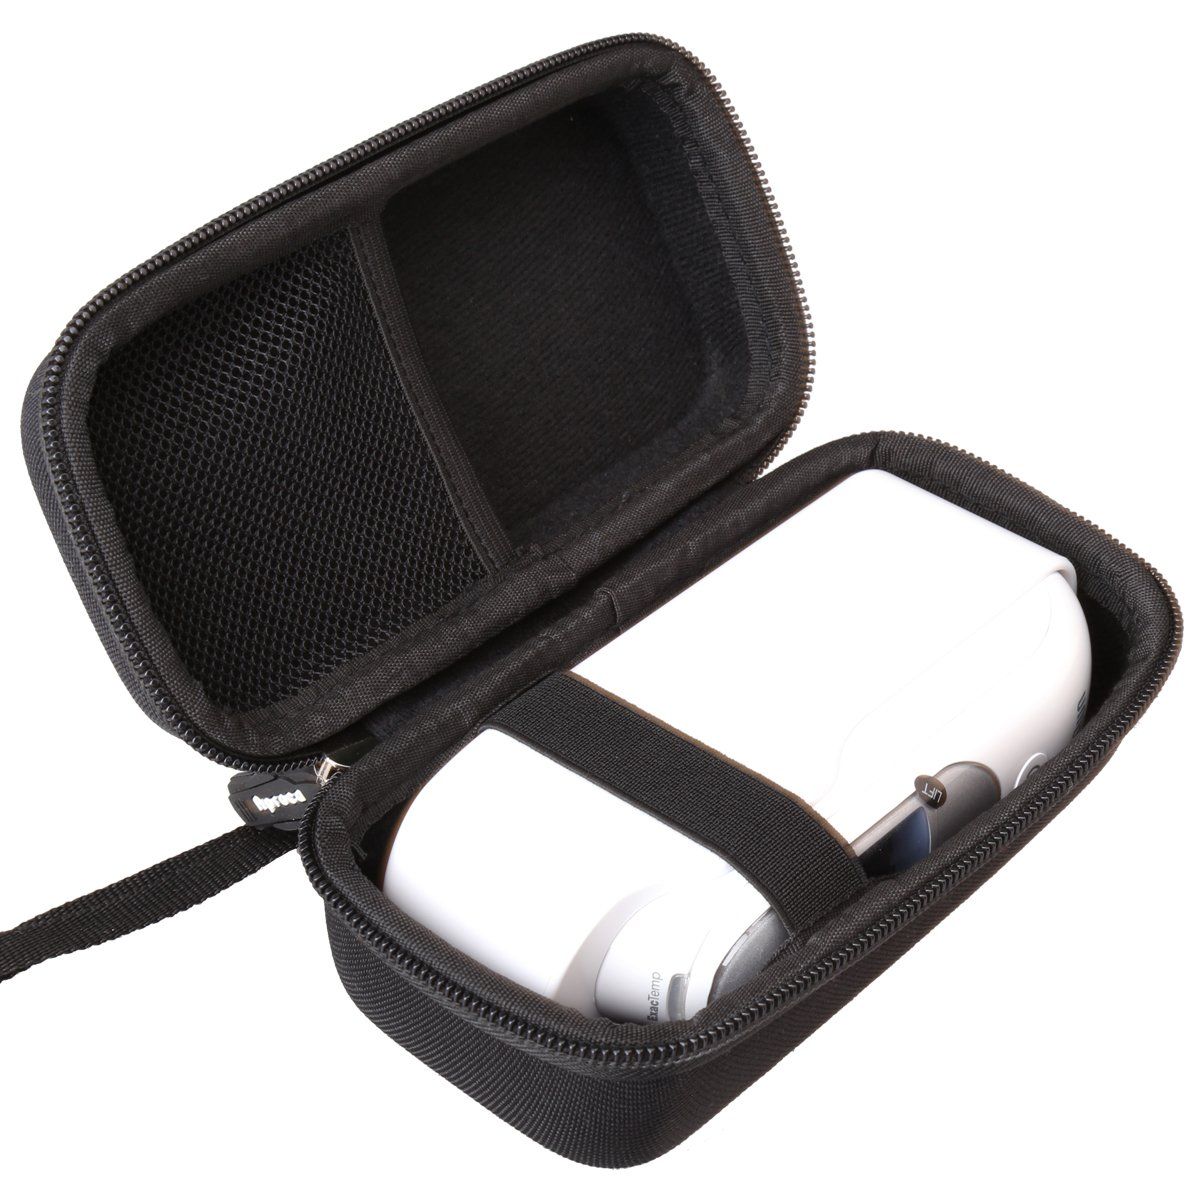 Aproca Hard Travel Carrying Case for Braun ThermoScan5 IRT6500 Digital Ear Thermometer